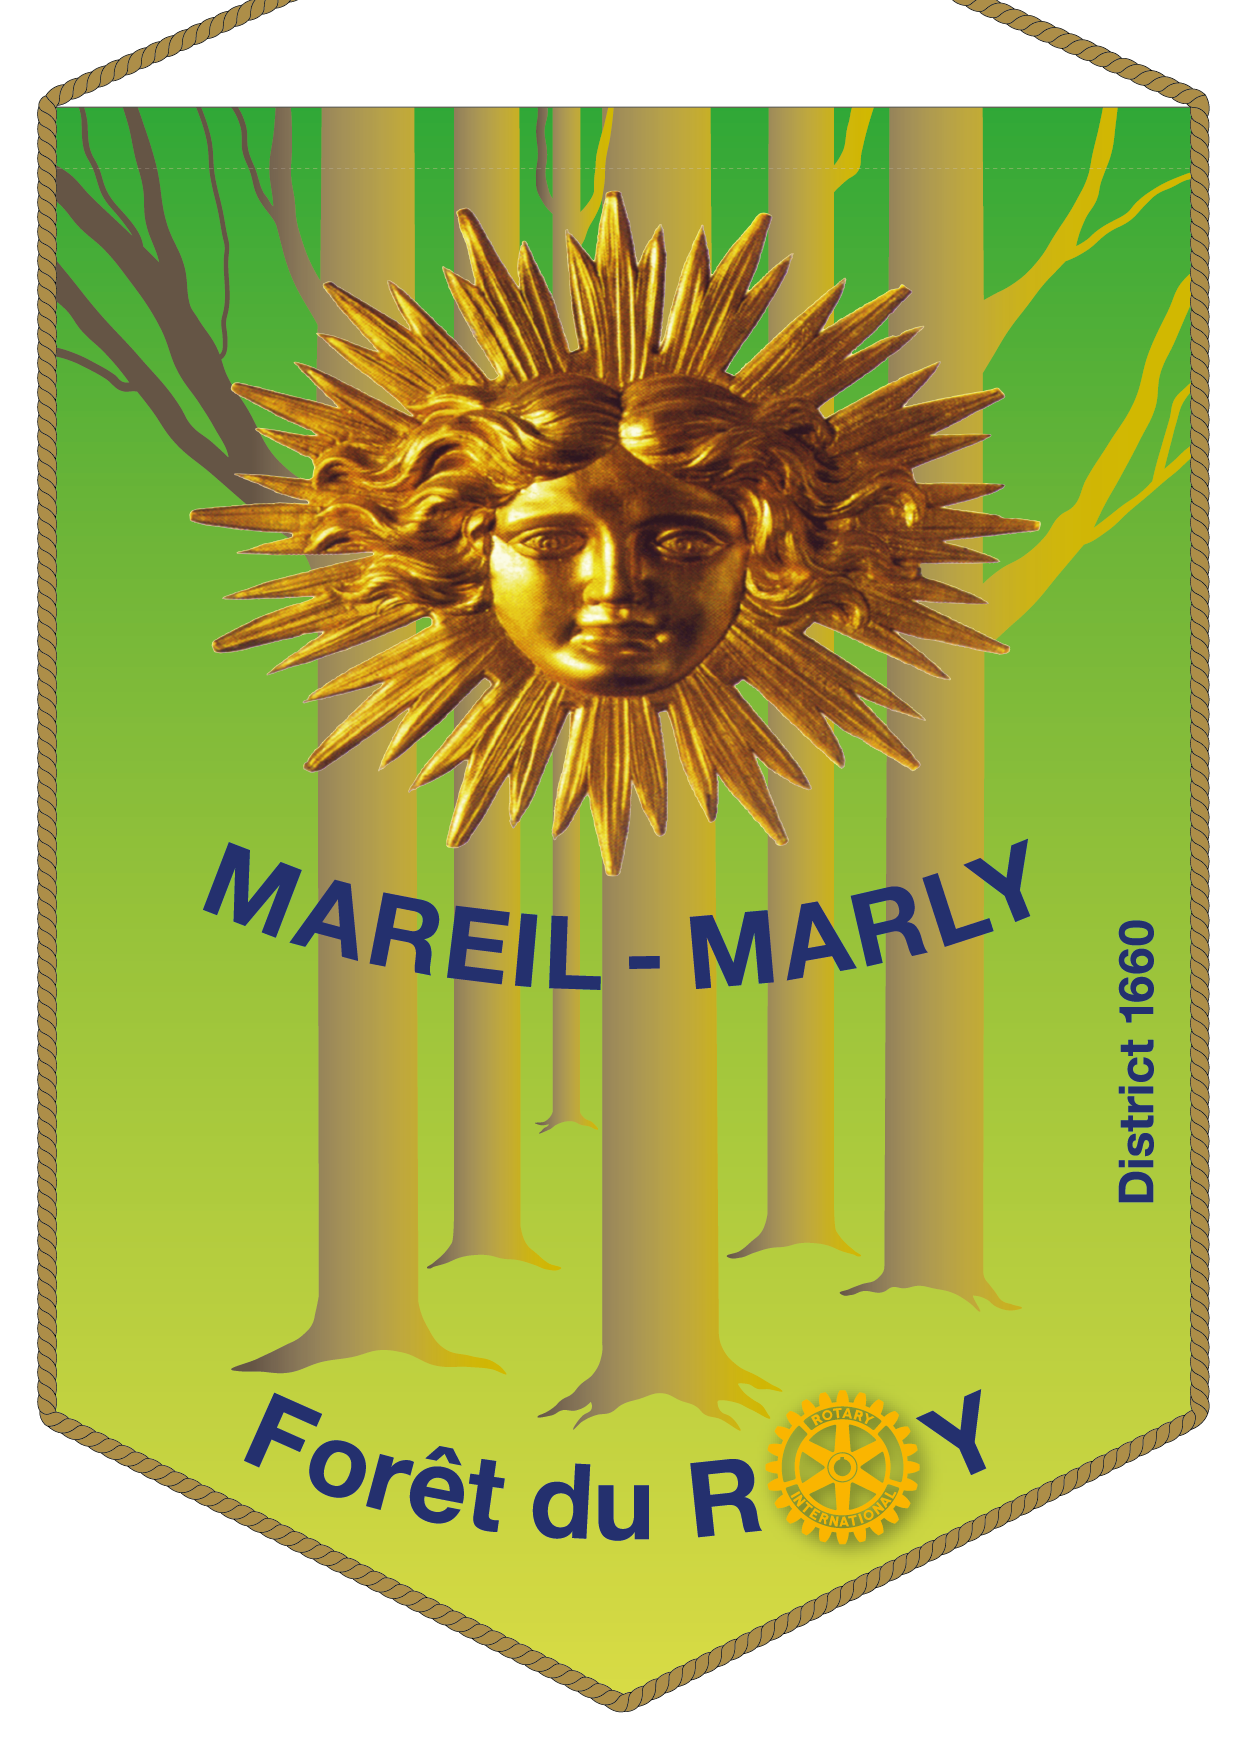 FANION ROTARY CLUB MAREUIL MARLY